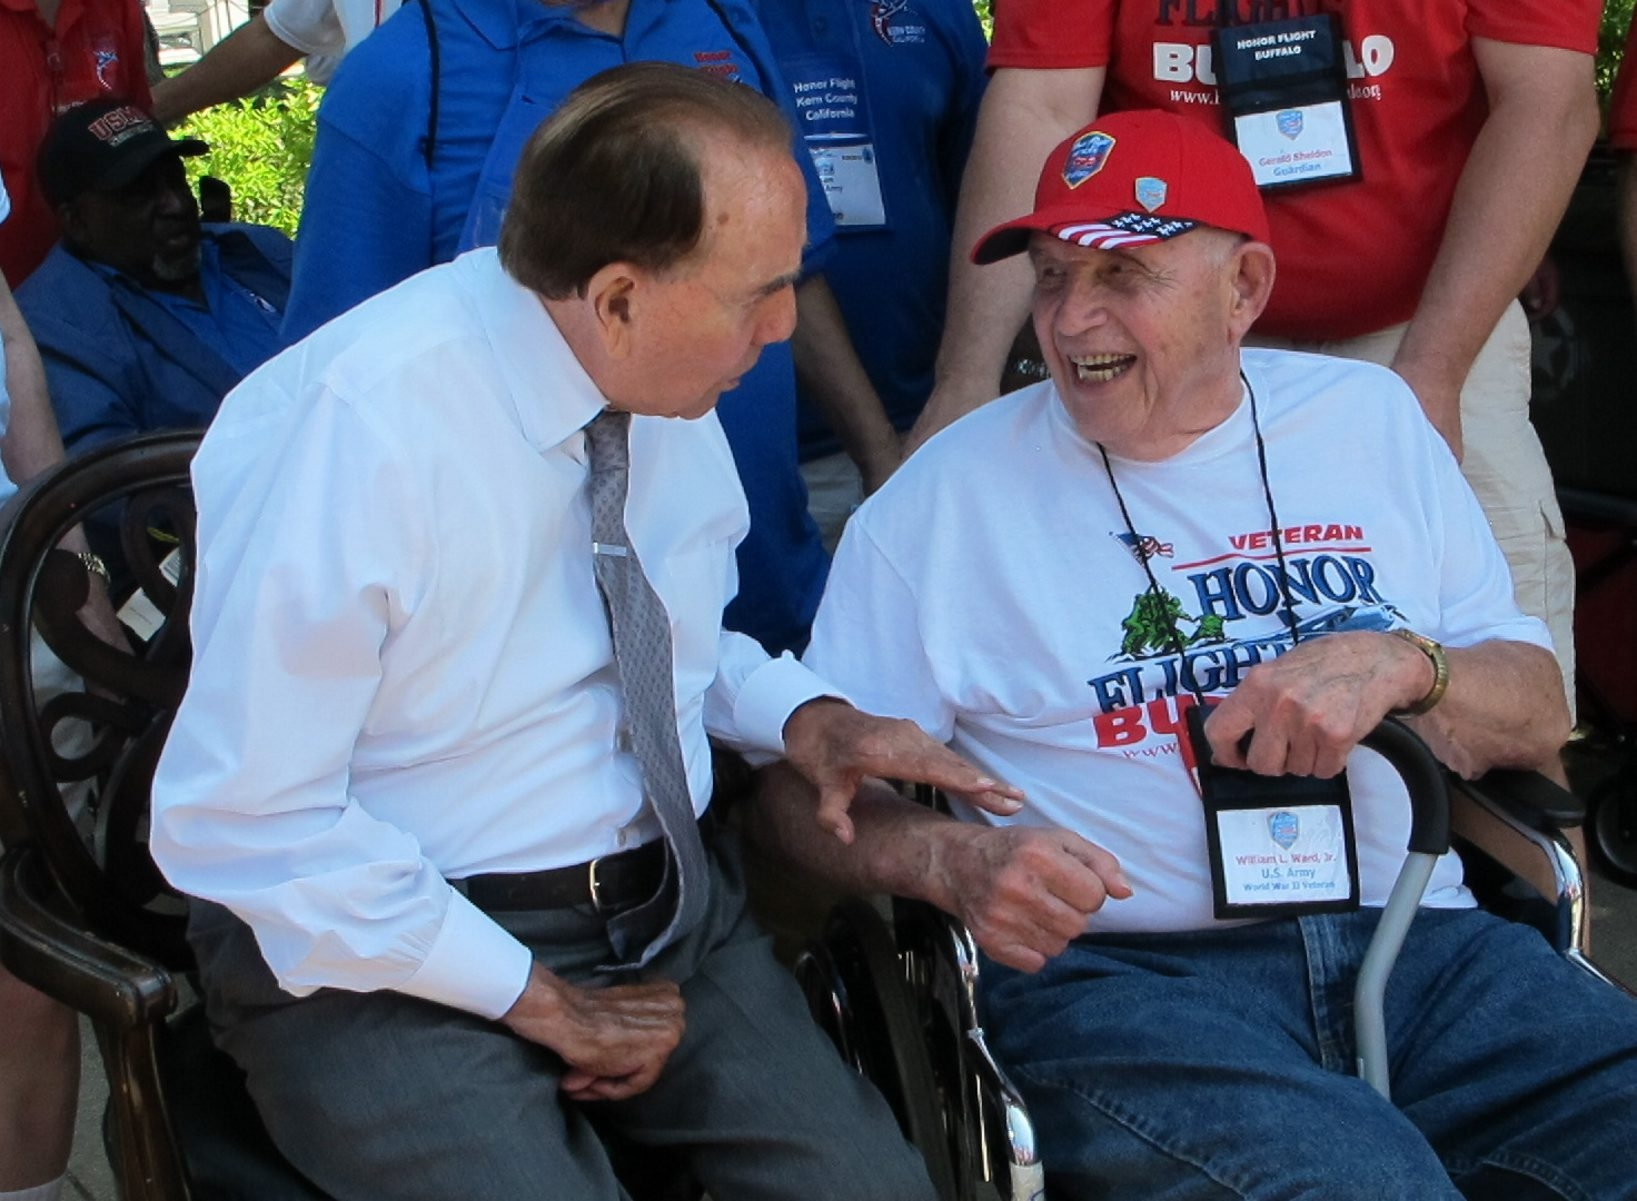 William L. Ward, an Army veteran from Newstead, shares a laugh with former Sen. Bob Dole, R-Kan., during his trip to Washington, D.C., on Saturday.